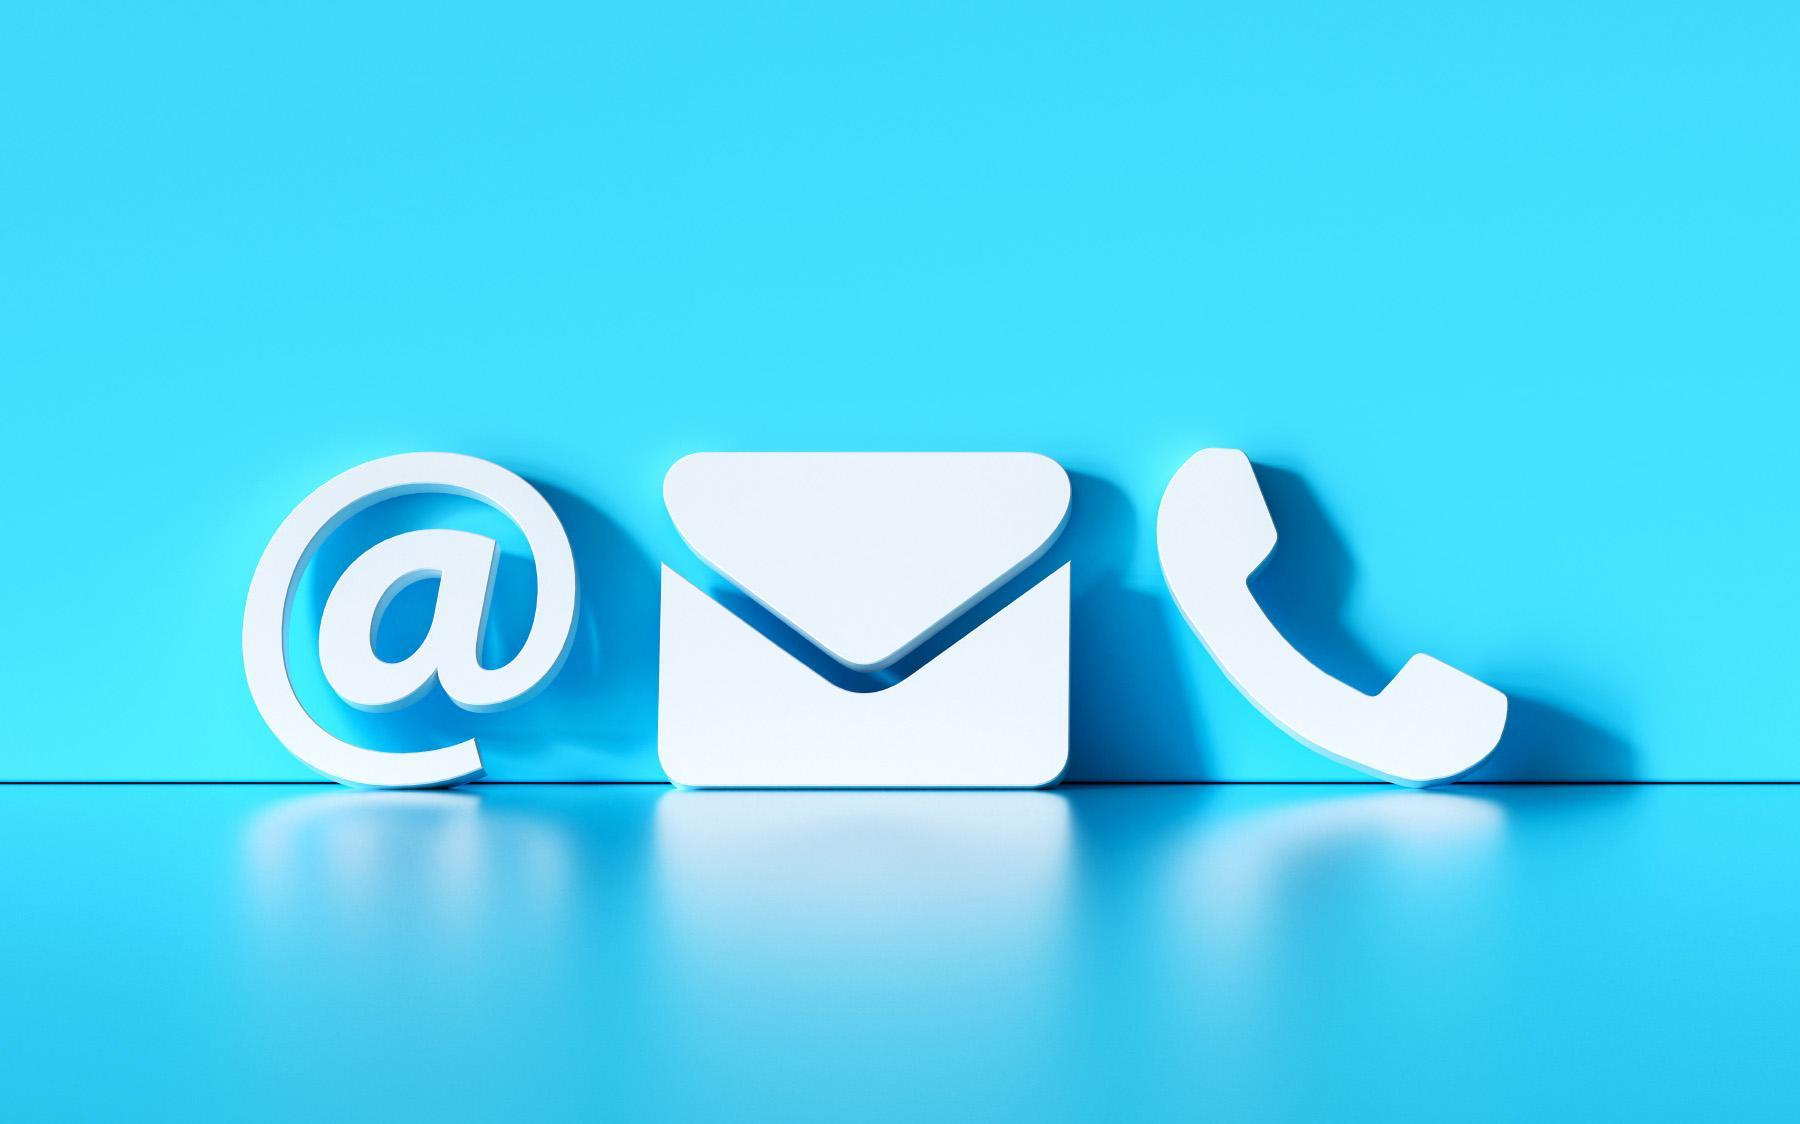 Phone, mail, and e-mail icons against a blue background